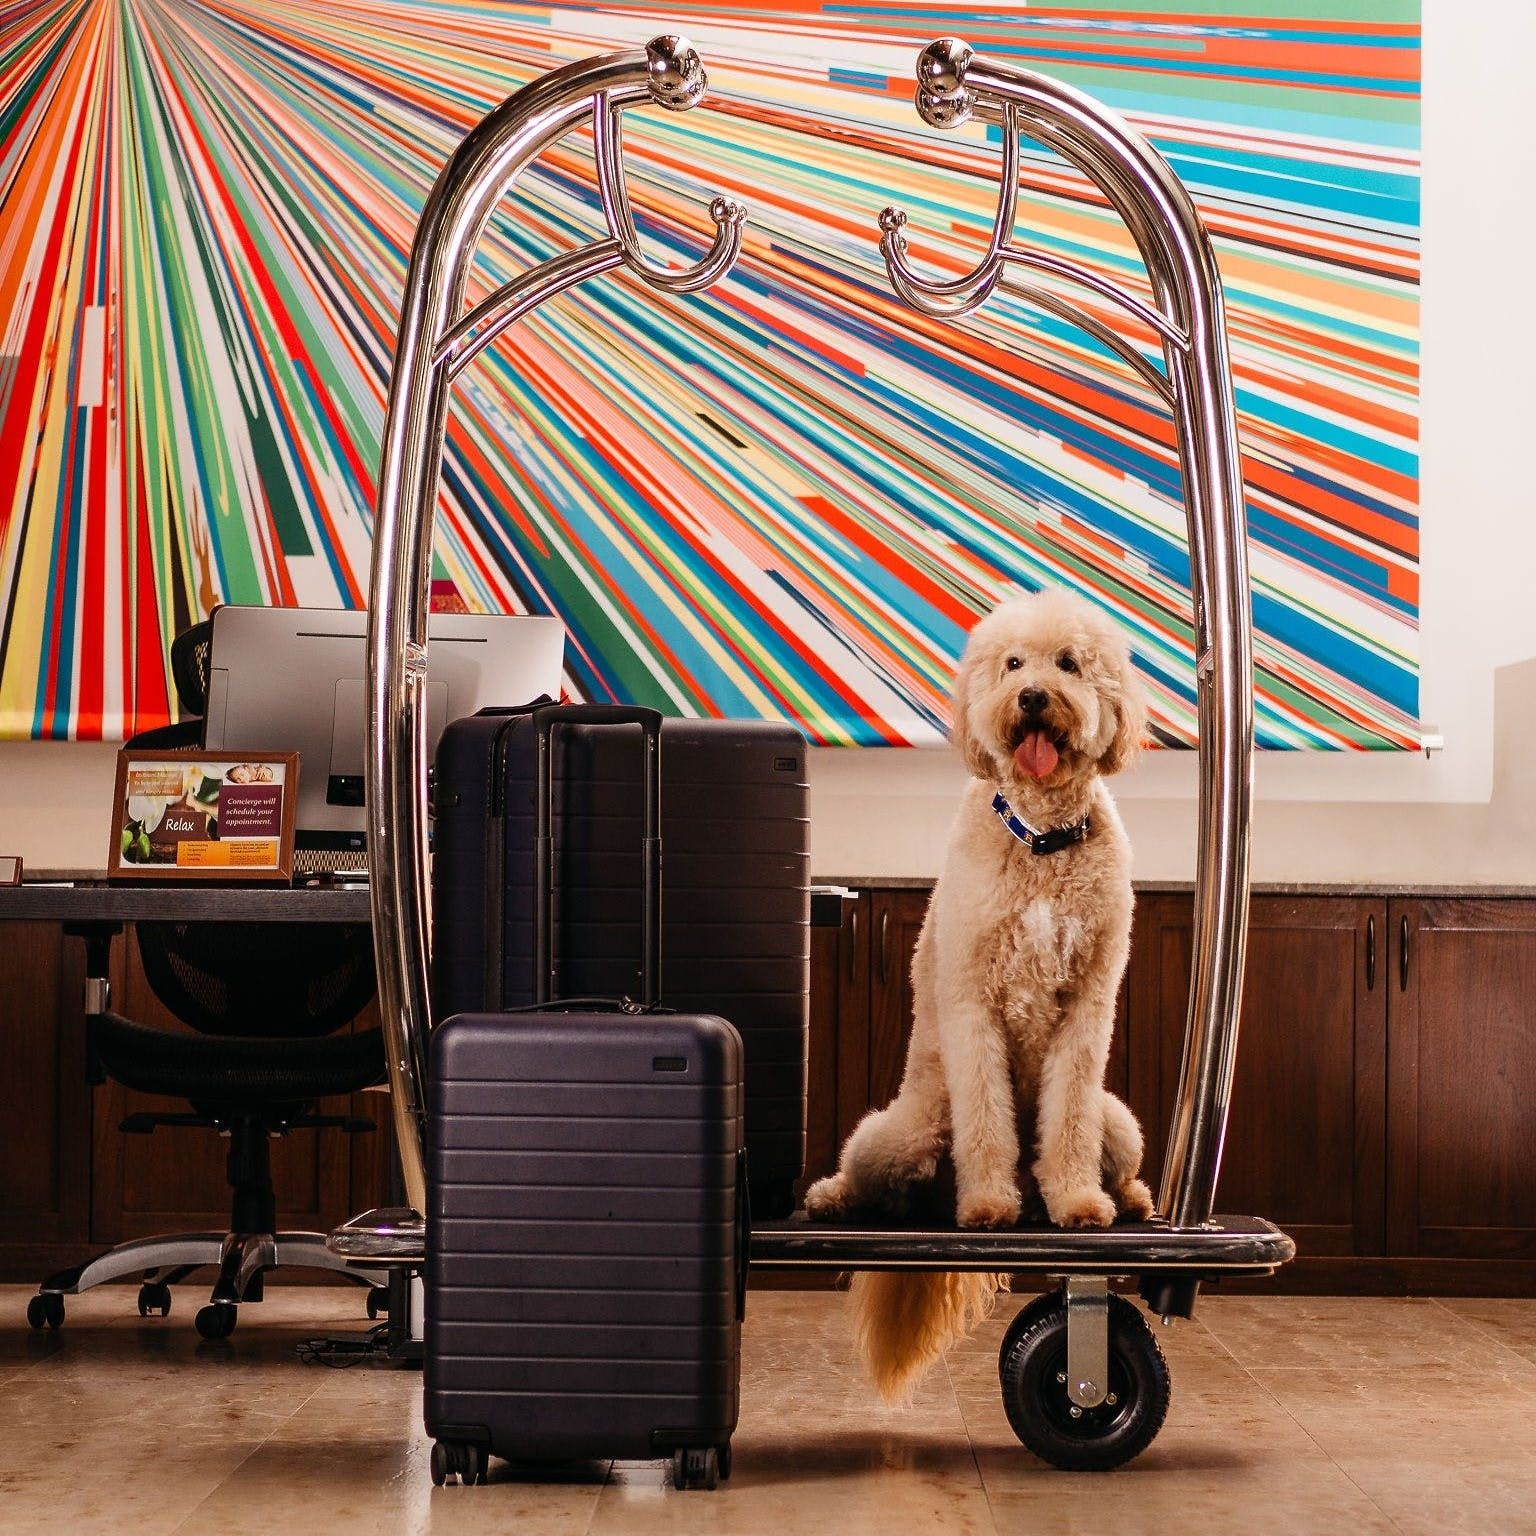 Top 10 Dog Friendly Things To Do In Palm Springs Ca Dogfriendly California Palmsprings Dog Friendly Vacation Dog Friendly Cities Pet Travel